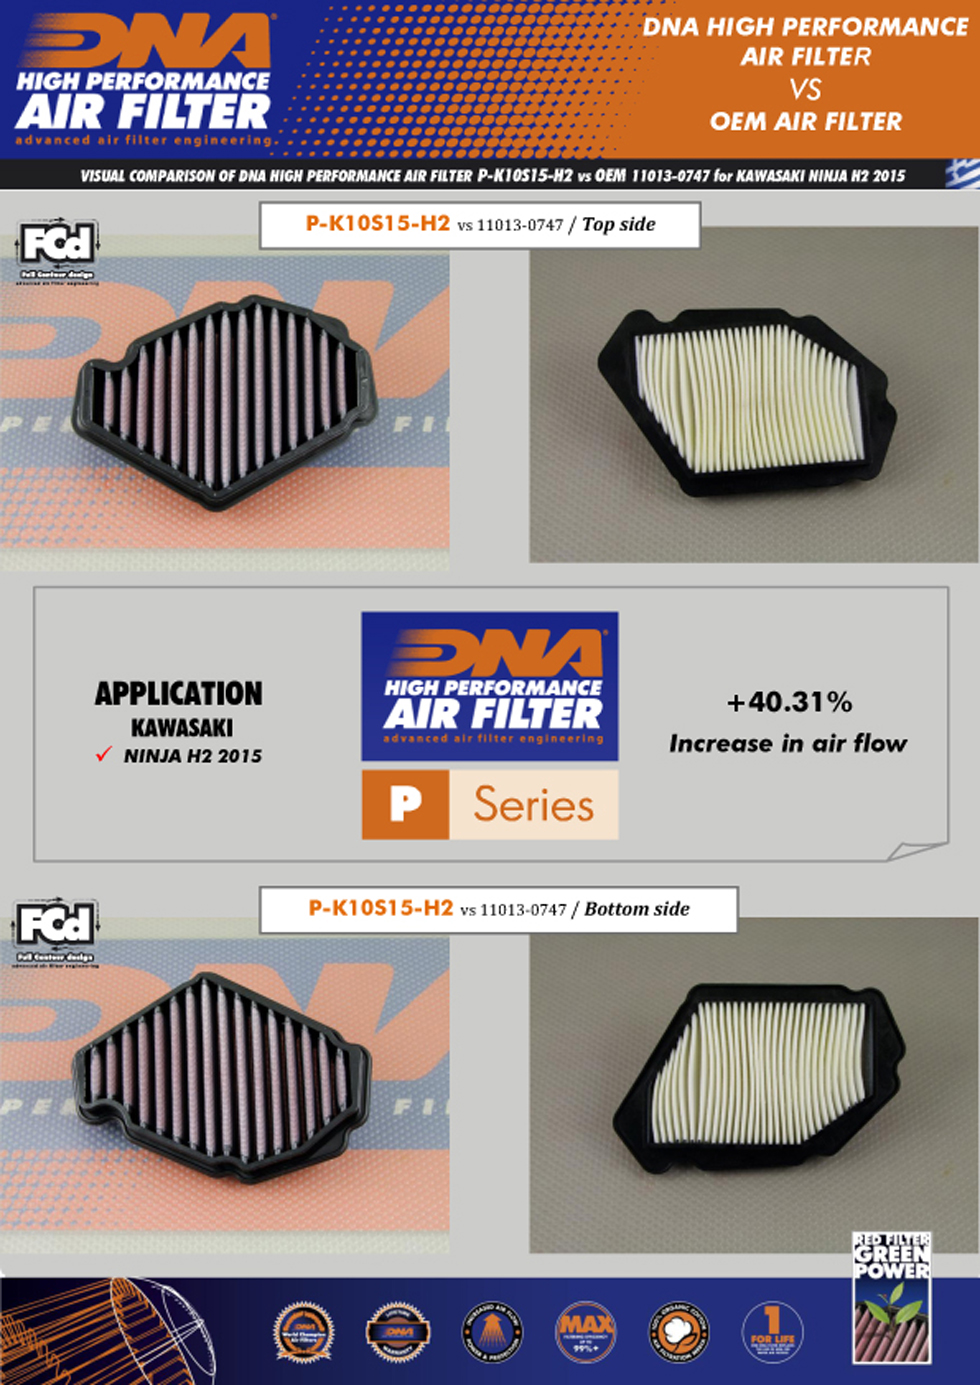 DNA air filters are far greater then the stock kawasaki paper air filters